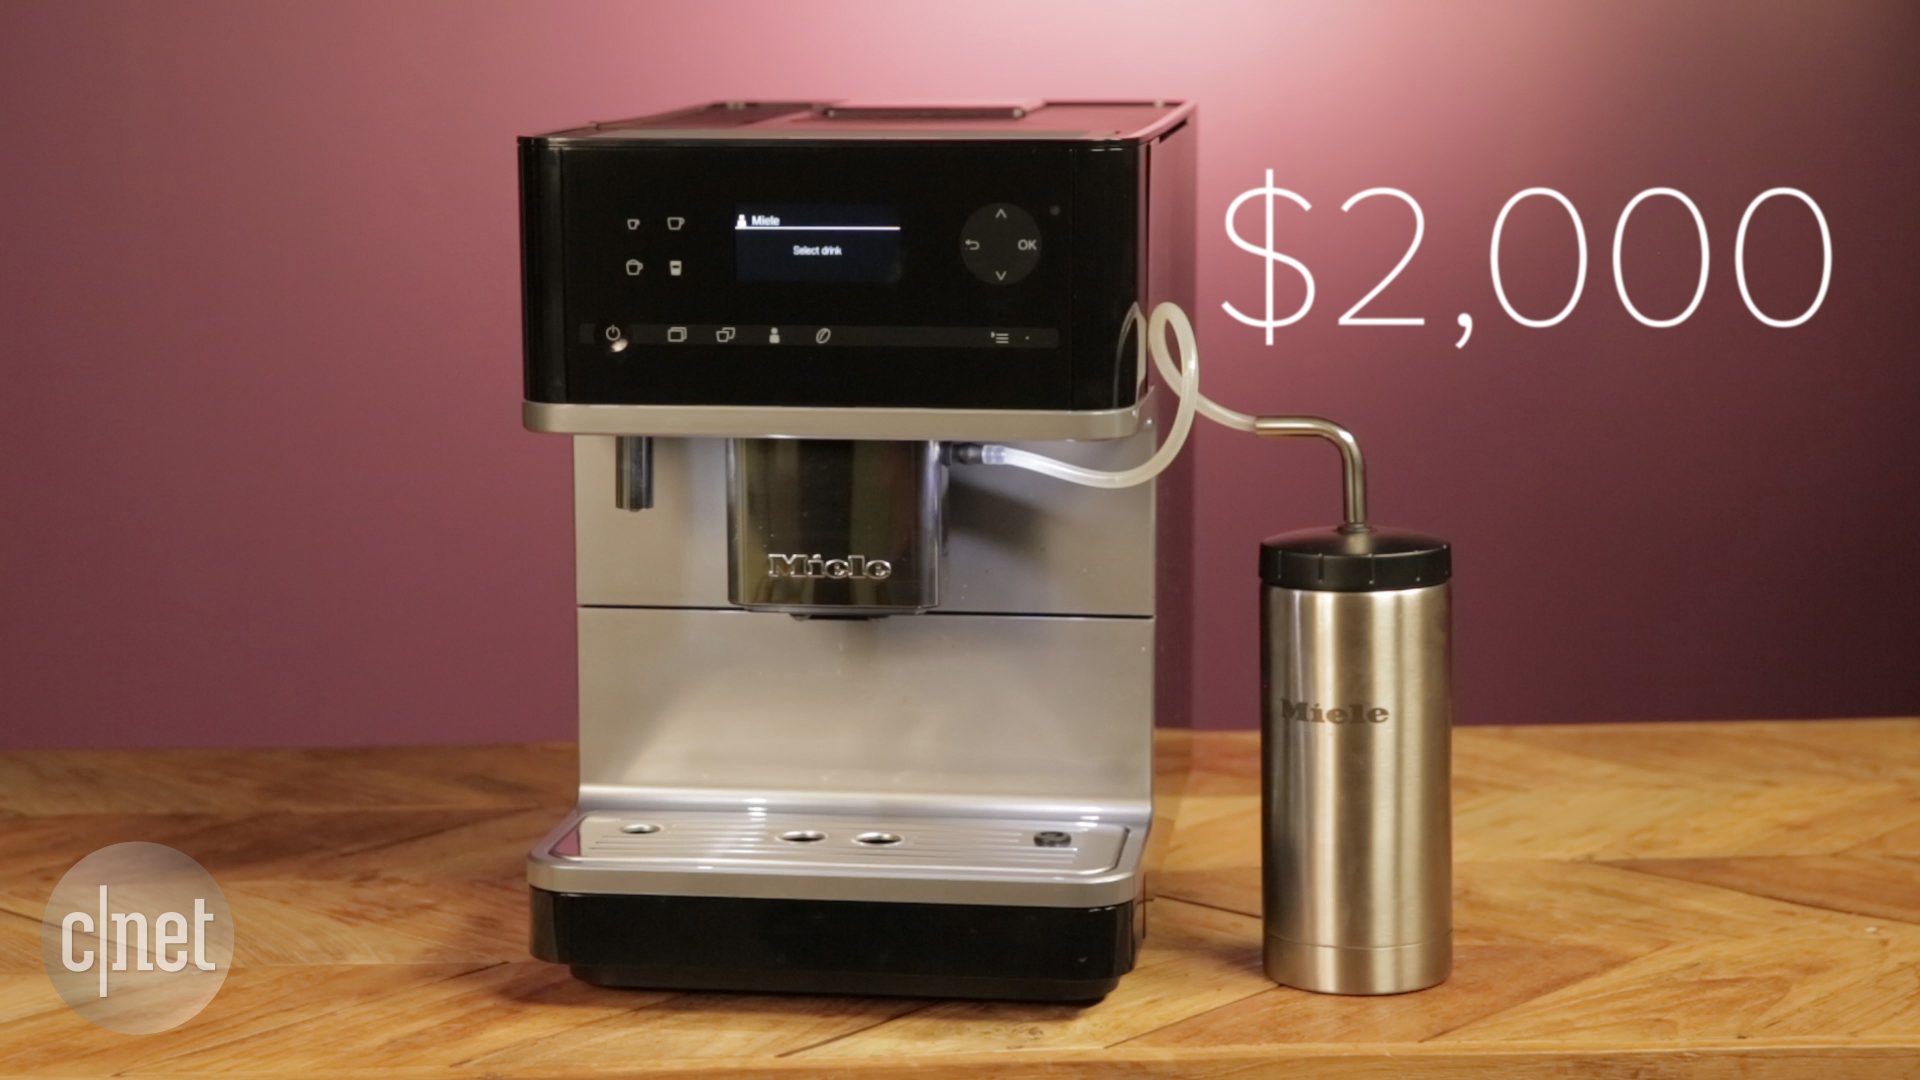 Video: Miele's Countertop Coffee System is pricey, powerful, and tricky to operate